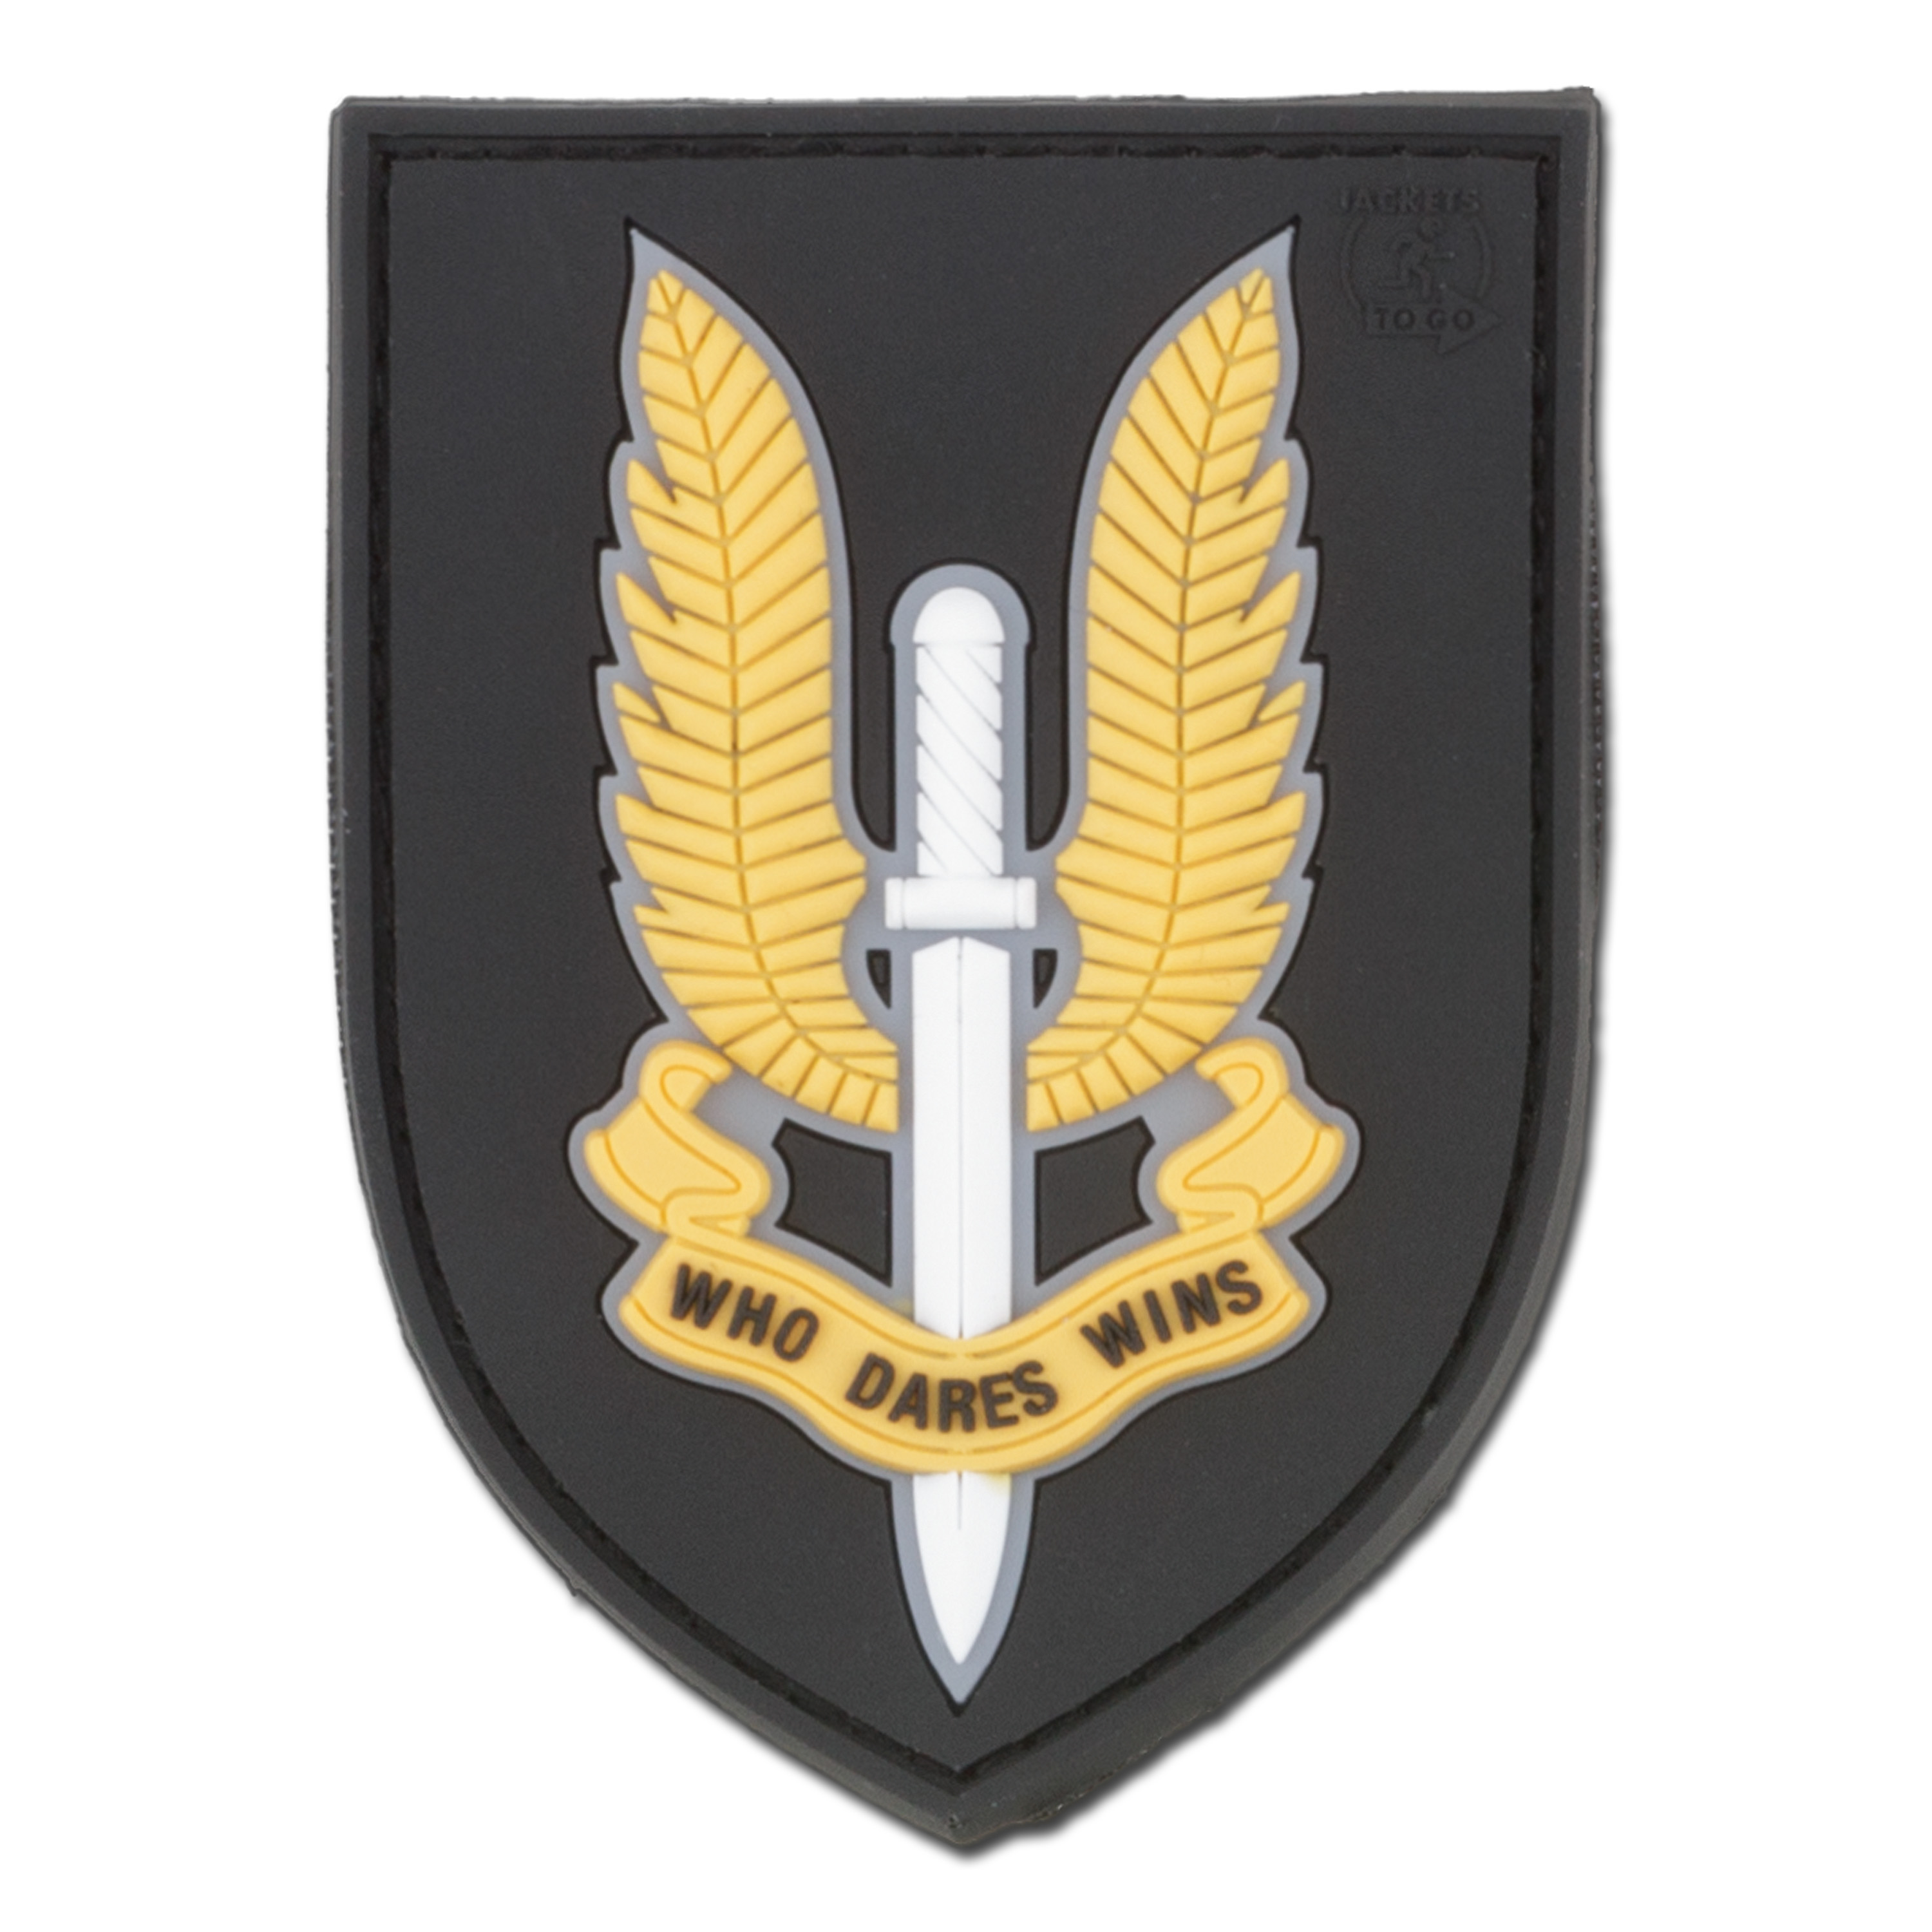 3D-Patch who dares wins SAS fullcolor